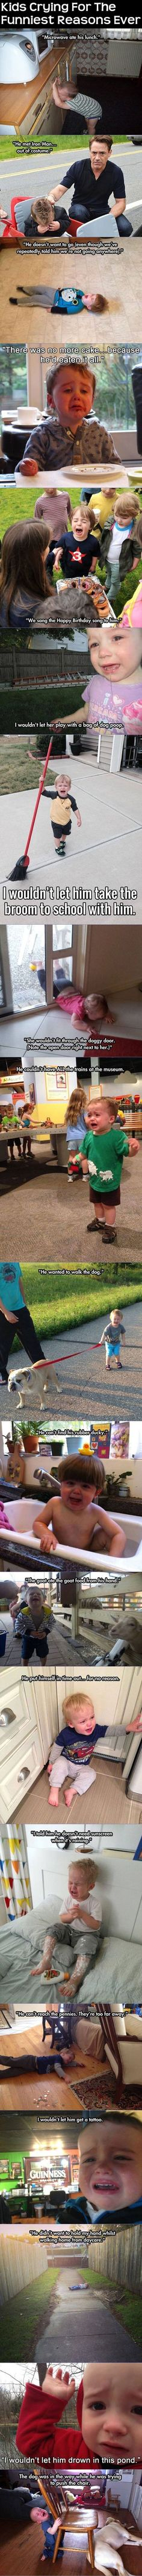 Kids Crying For The Funniest Reasons Ever funny kids parents lol children humor funny pictures funny kids hysterical funny images why my kid is crying